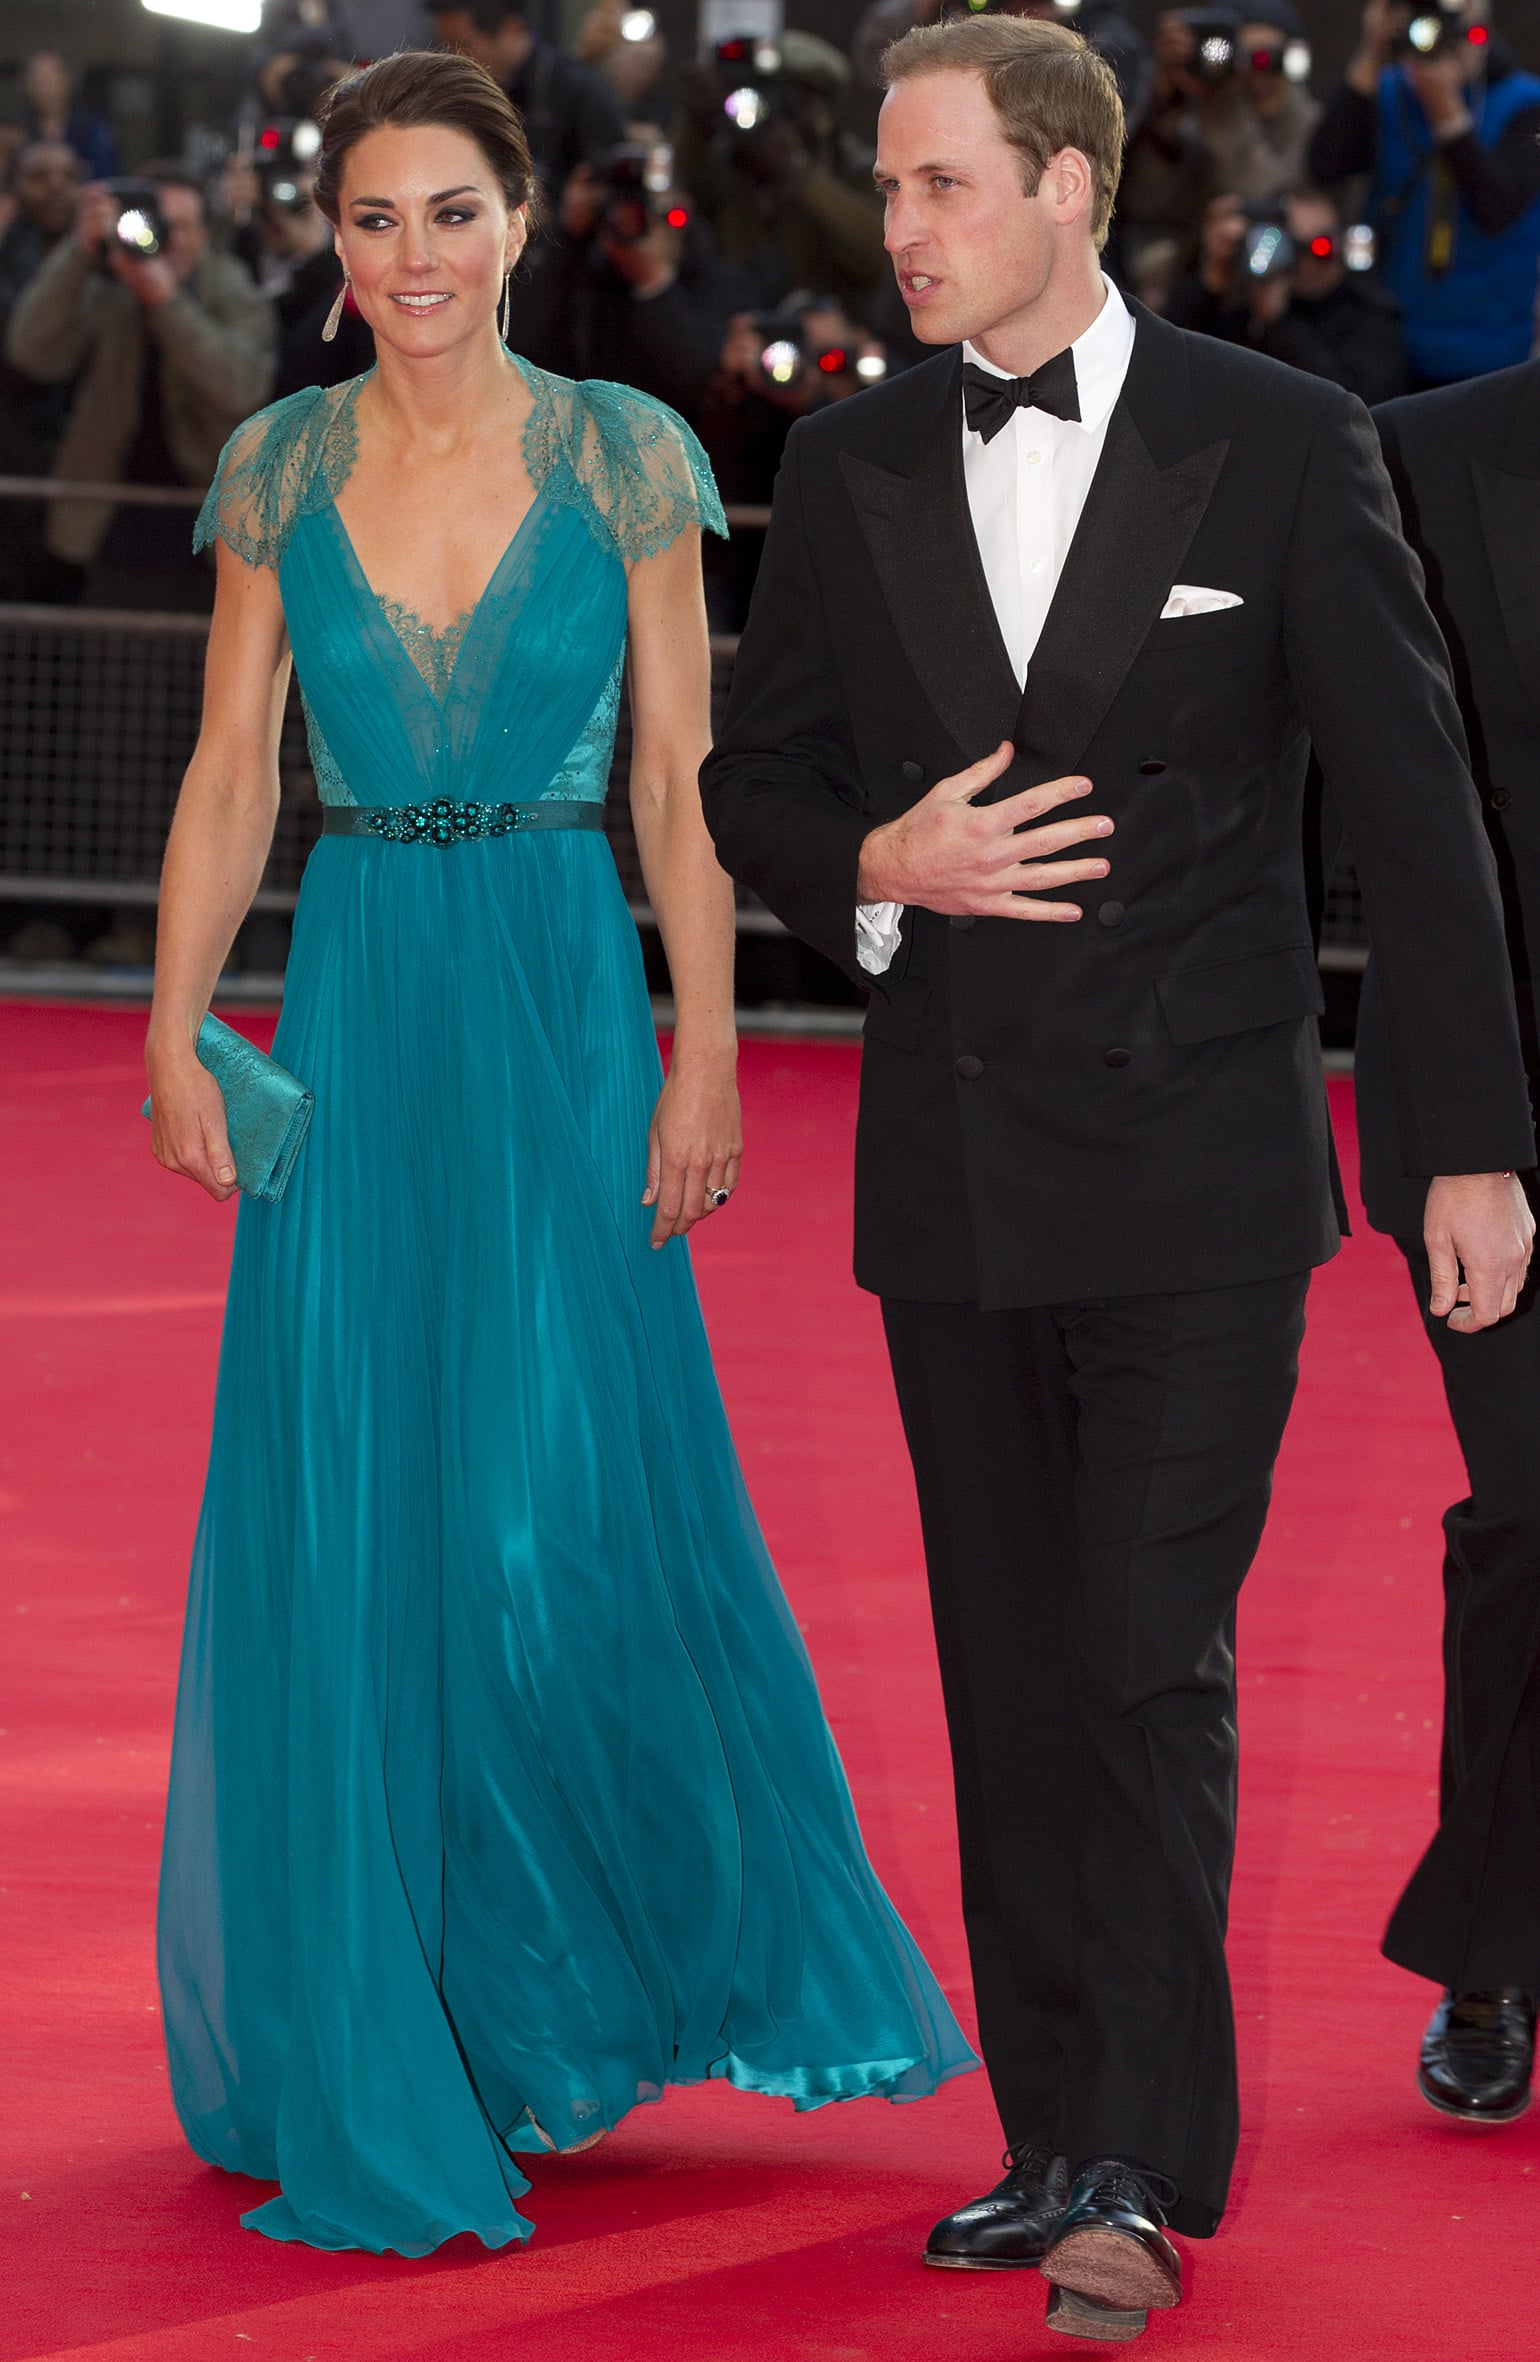 The Royal Couple at the Olympic Concert